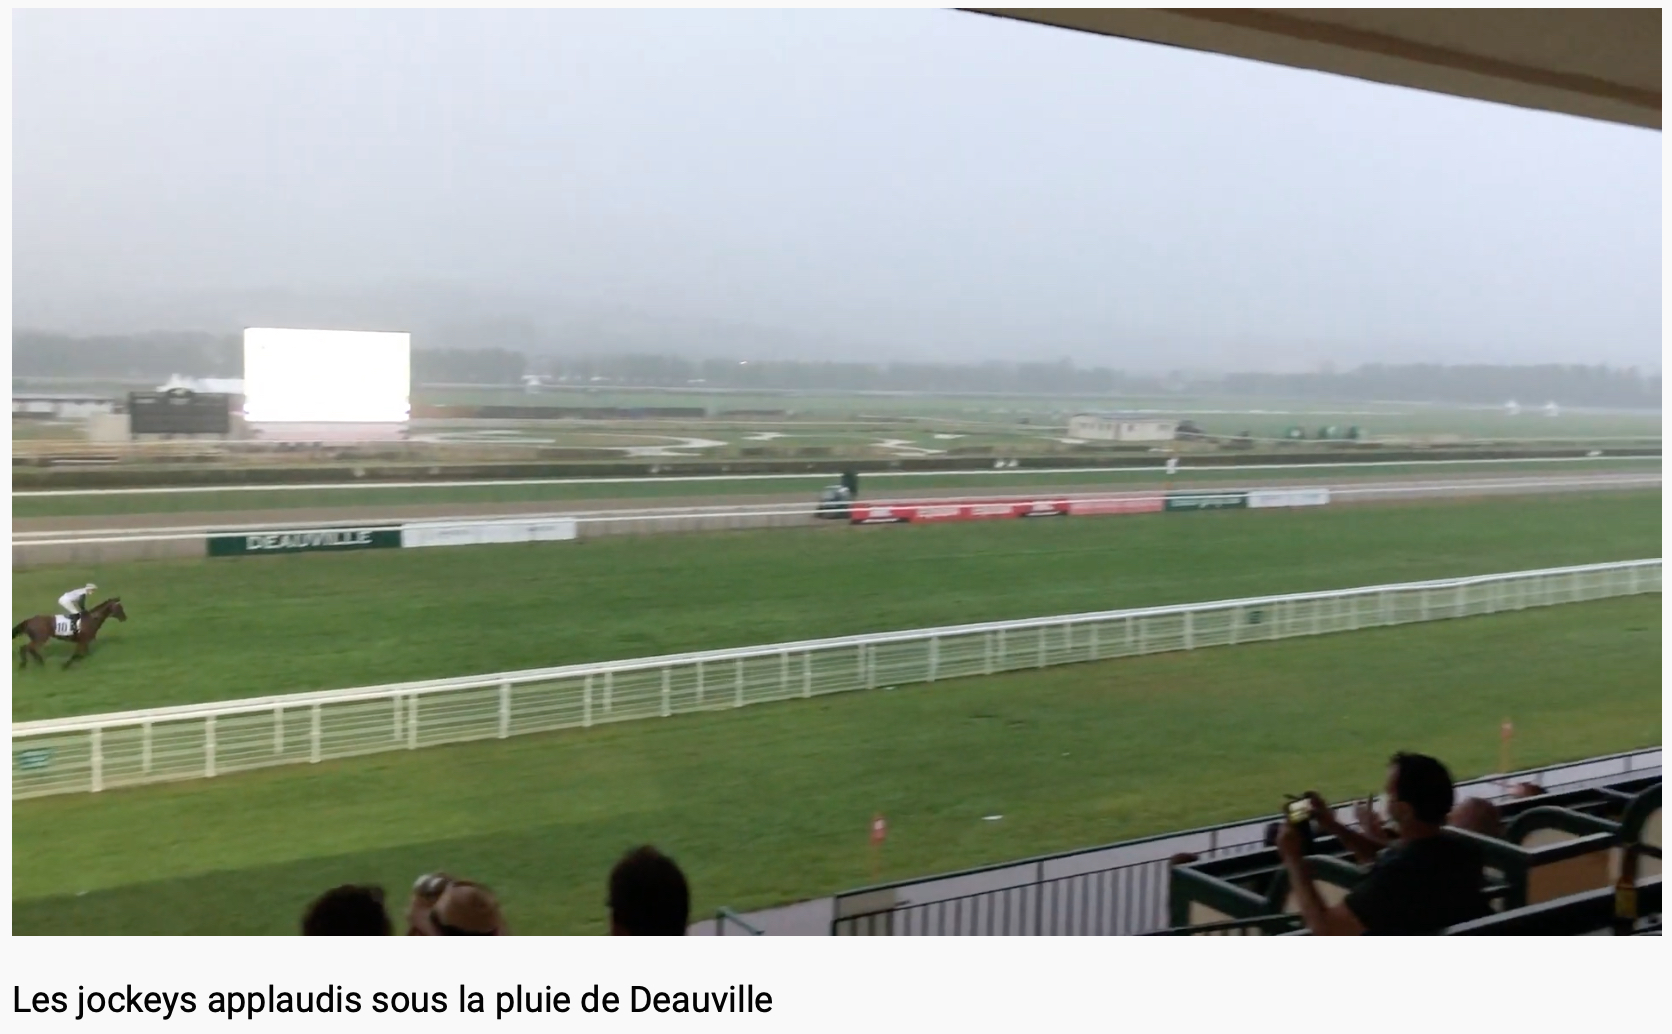 Les jockeys du handicap de la 7e applaudis !